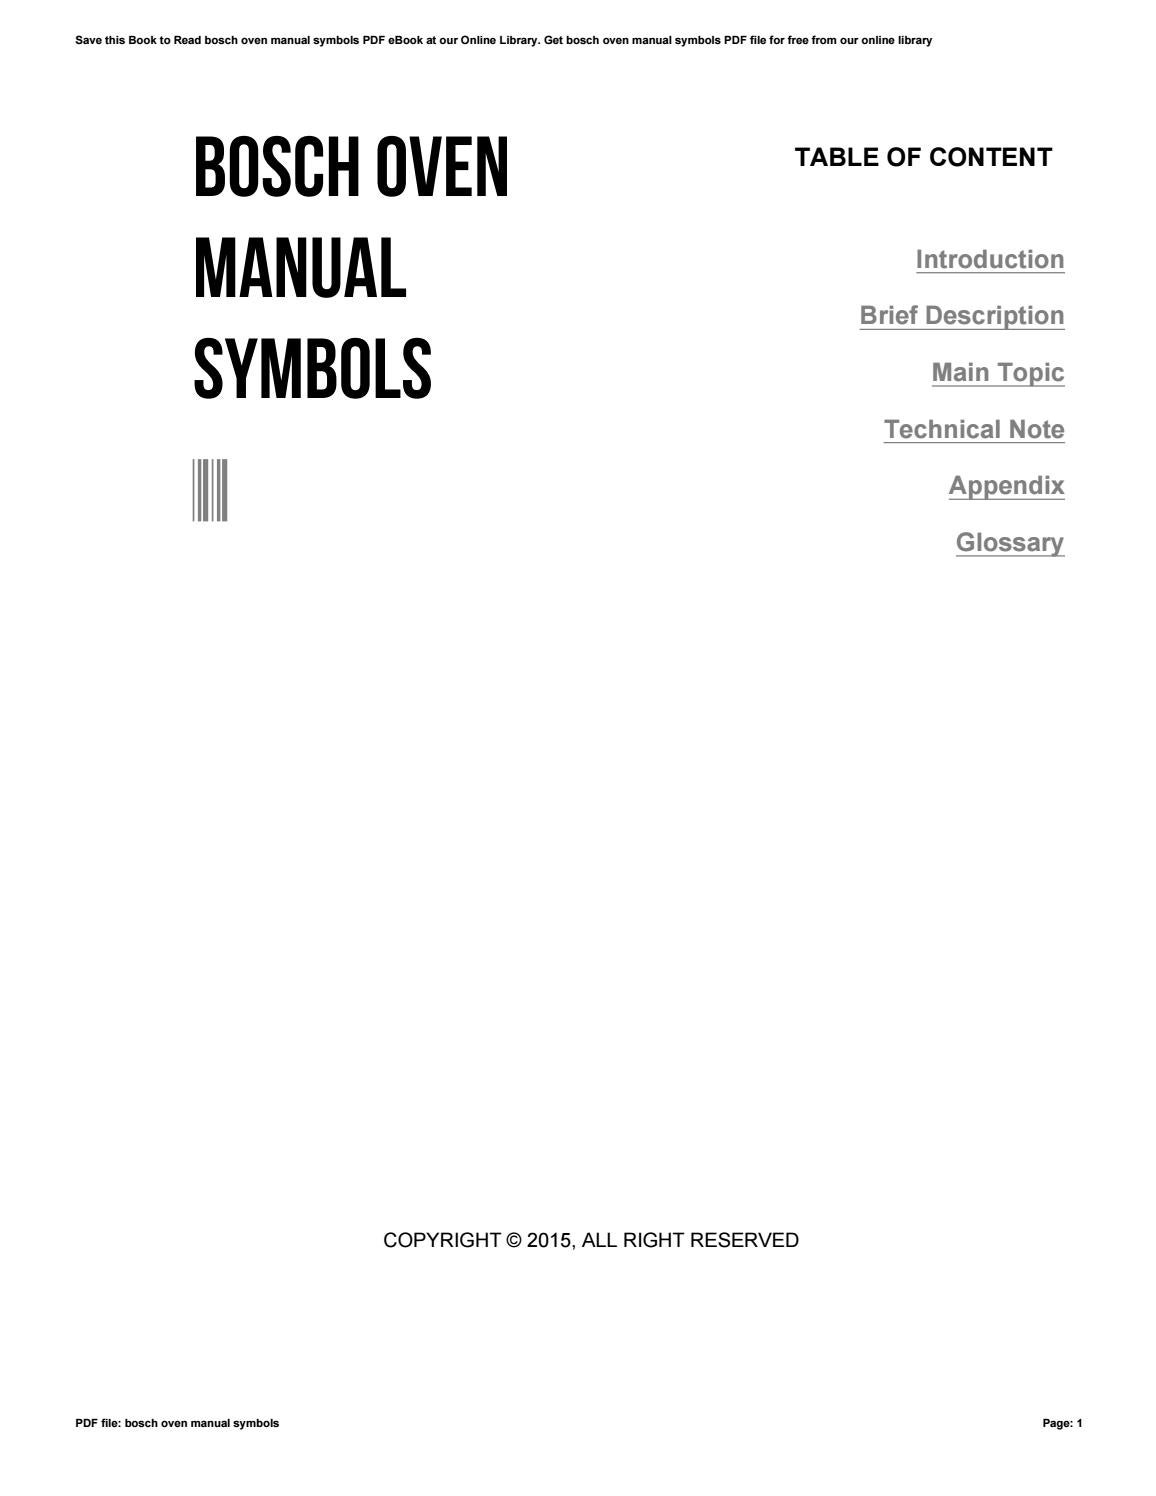 Bosch Oven Manual Symbols By P848 Issuu